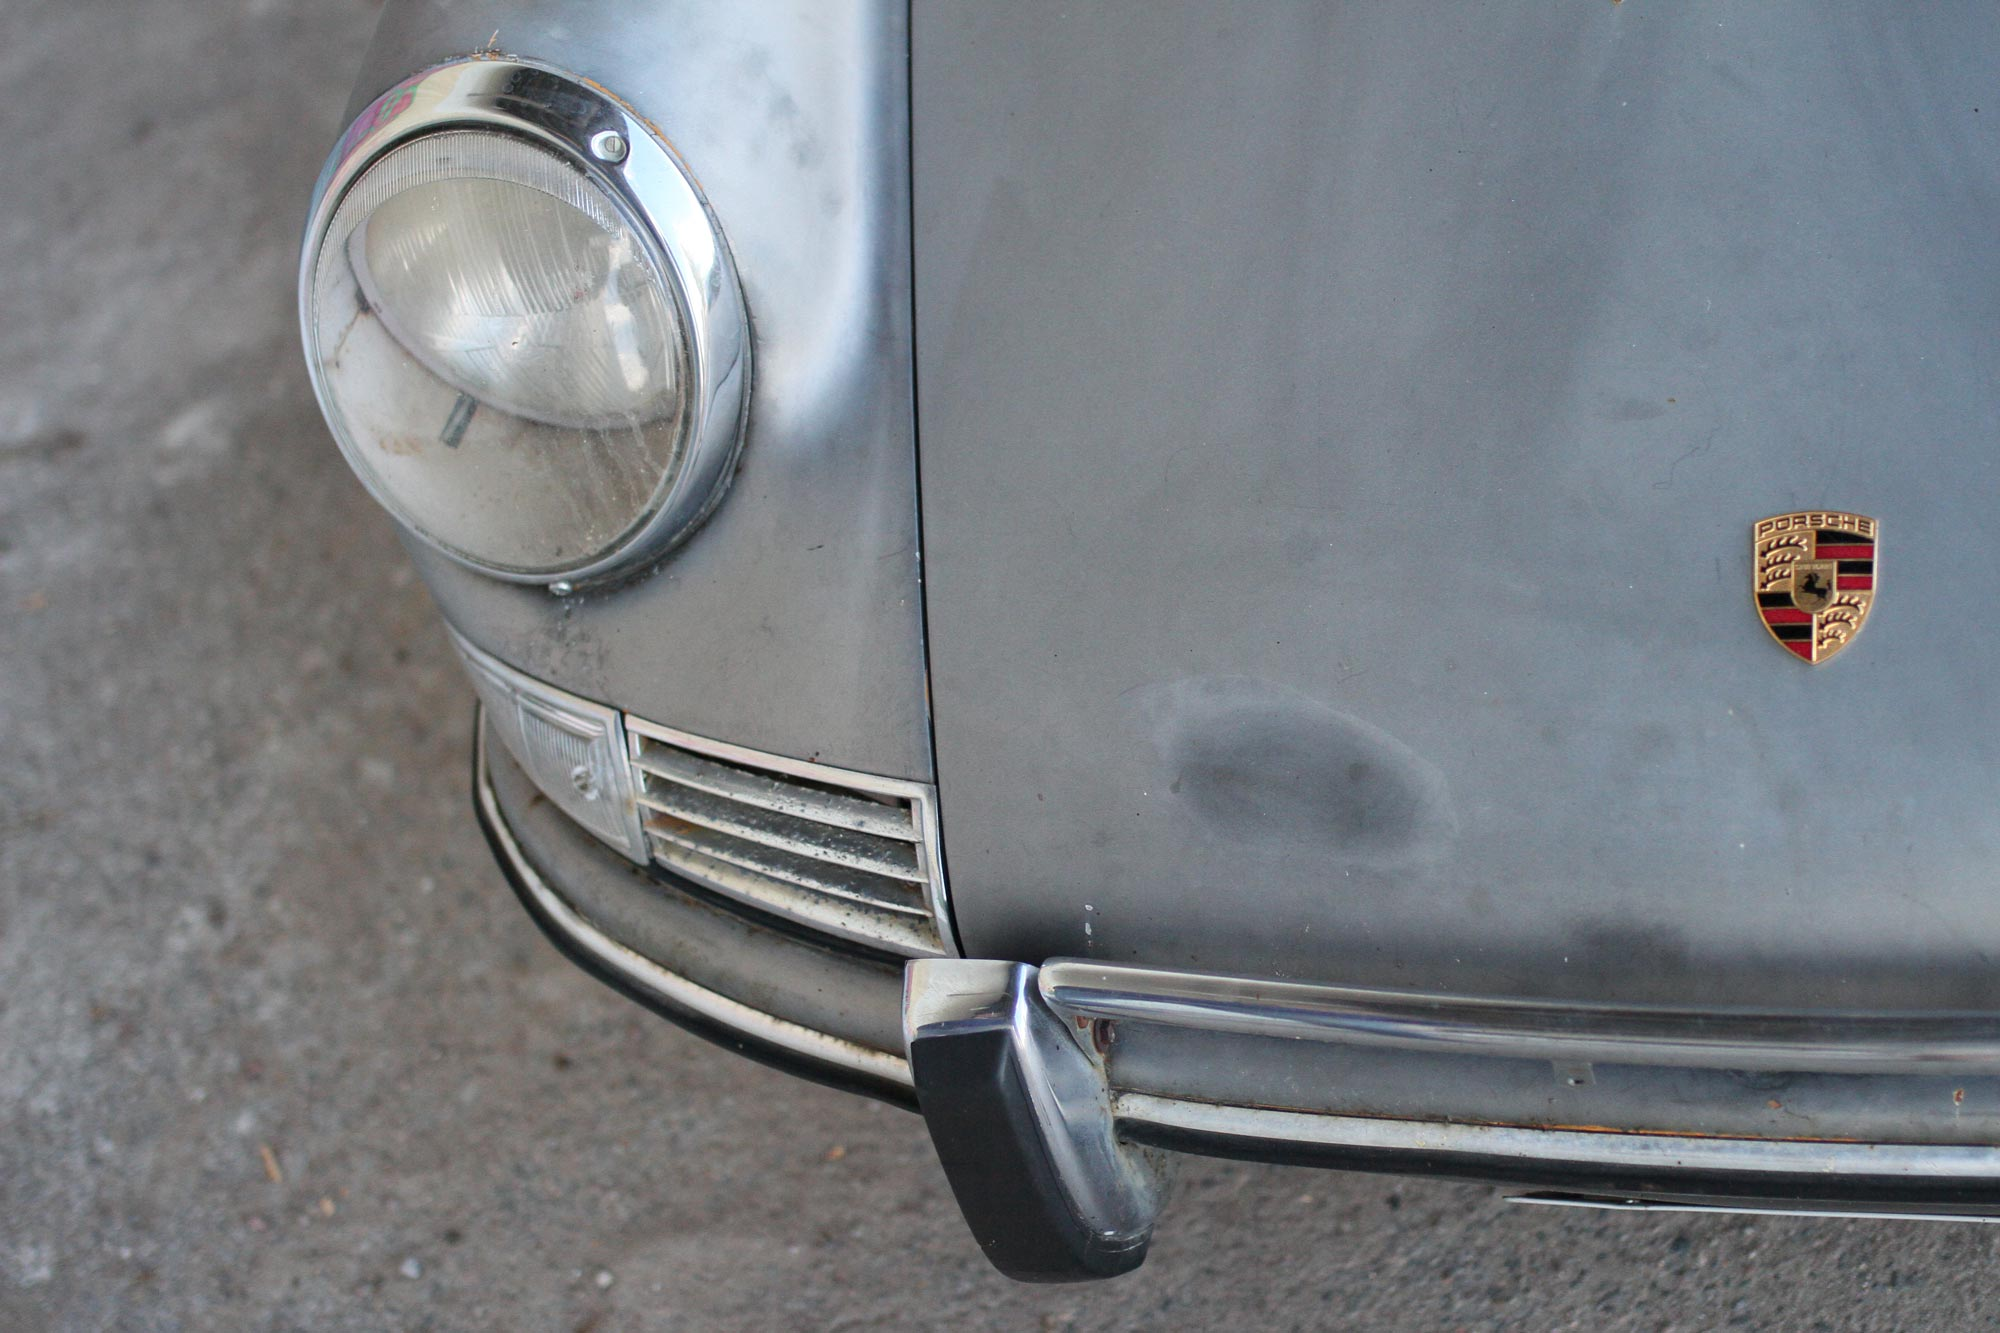 The Porsche badge in the front of the car together with the headlights on a patina 912